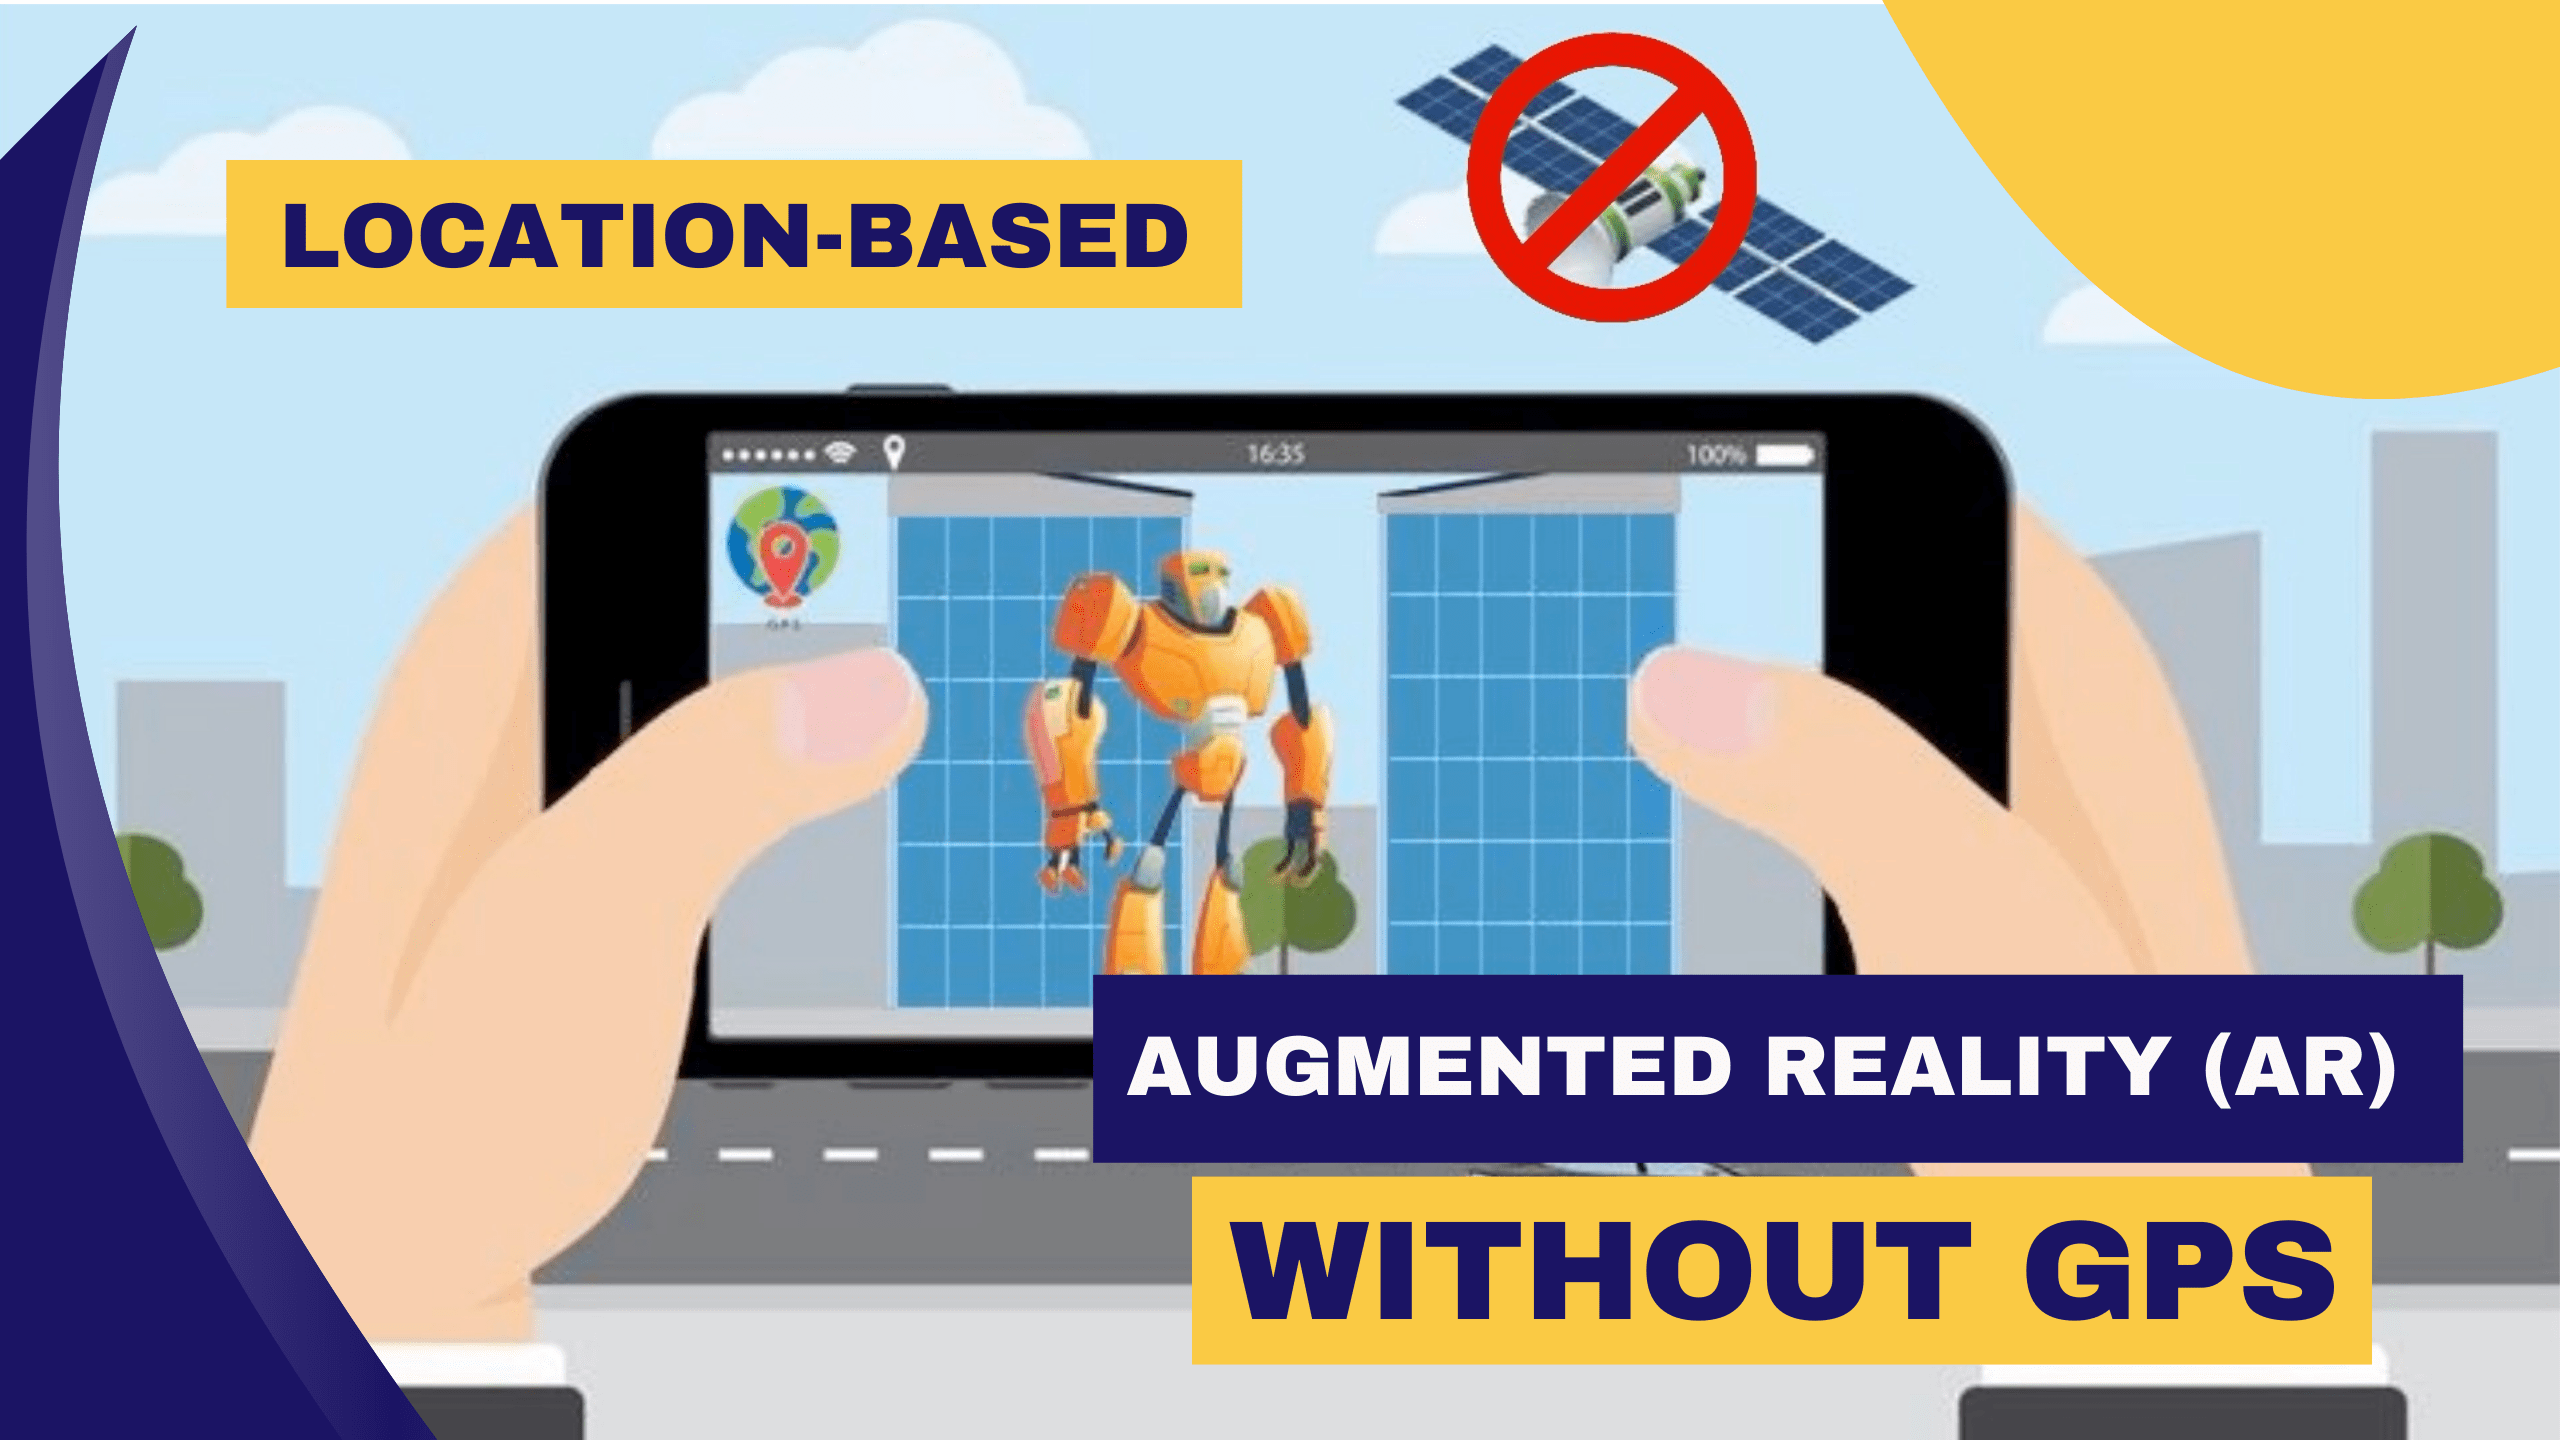 Location-based Augmented Reality (AR) without GPS